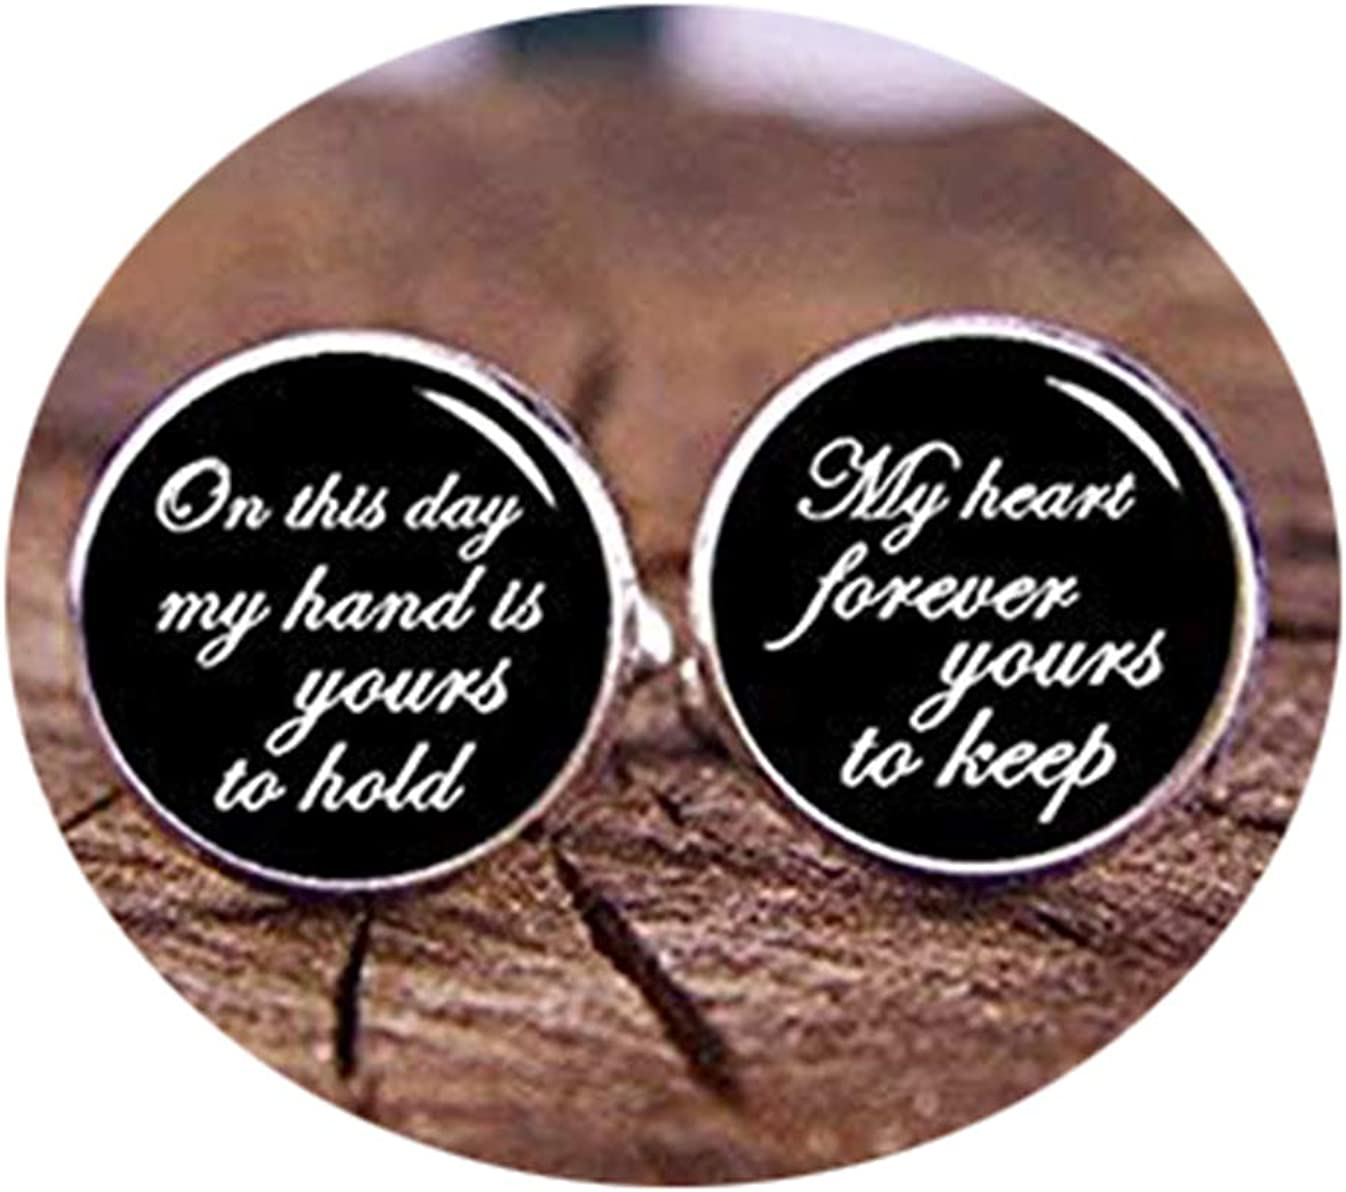 Custom Cuff Links,On This Day My Hand is Yours to Hold, Custom Any Wording, Personalized Wedding Cuff Links, Heart Forever Yours, Groom Cuff Links, Tie Clips,Gift of Love